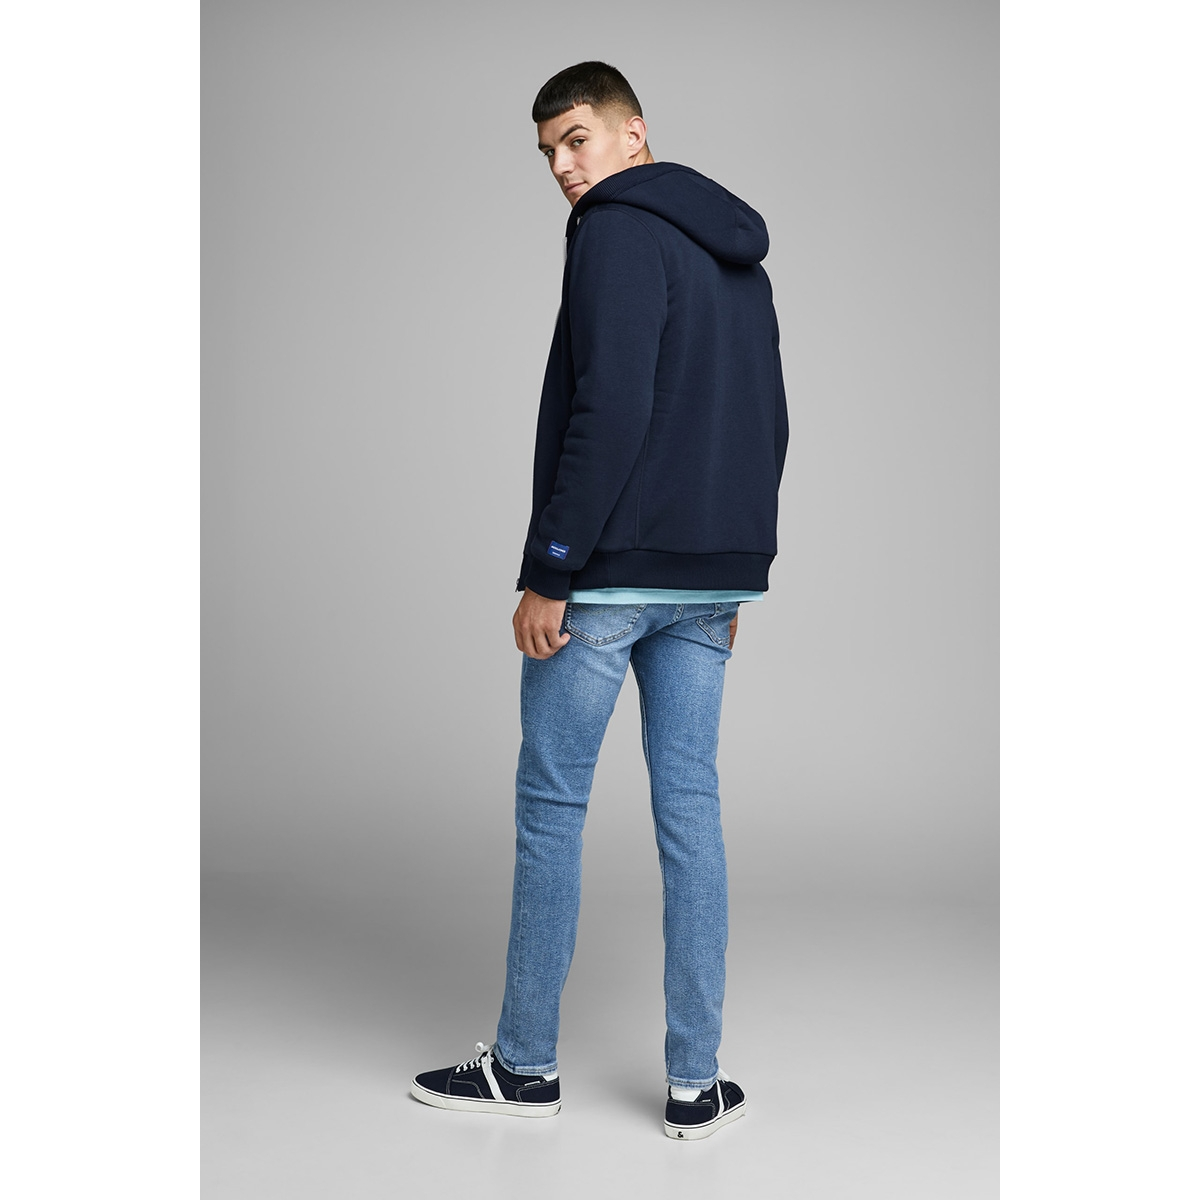 jorted sweat zip jacket 12161793 jack & jones vest navy blazer